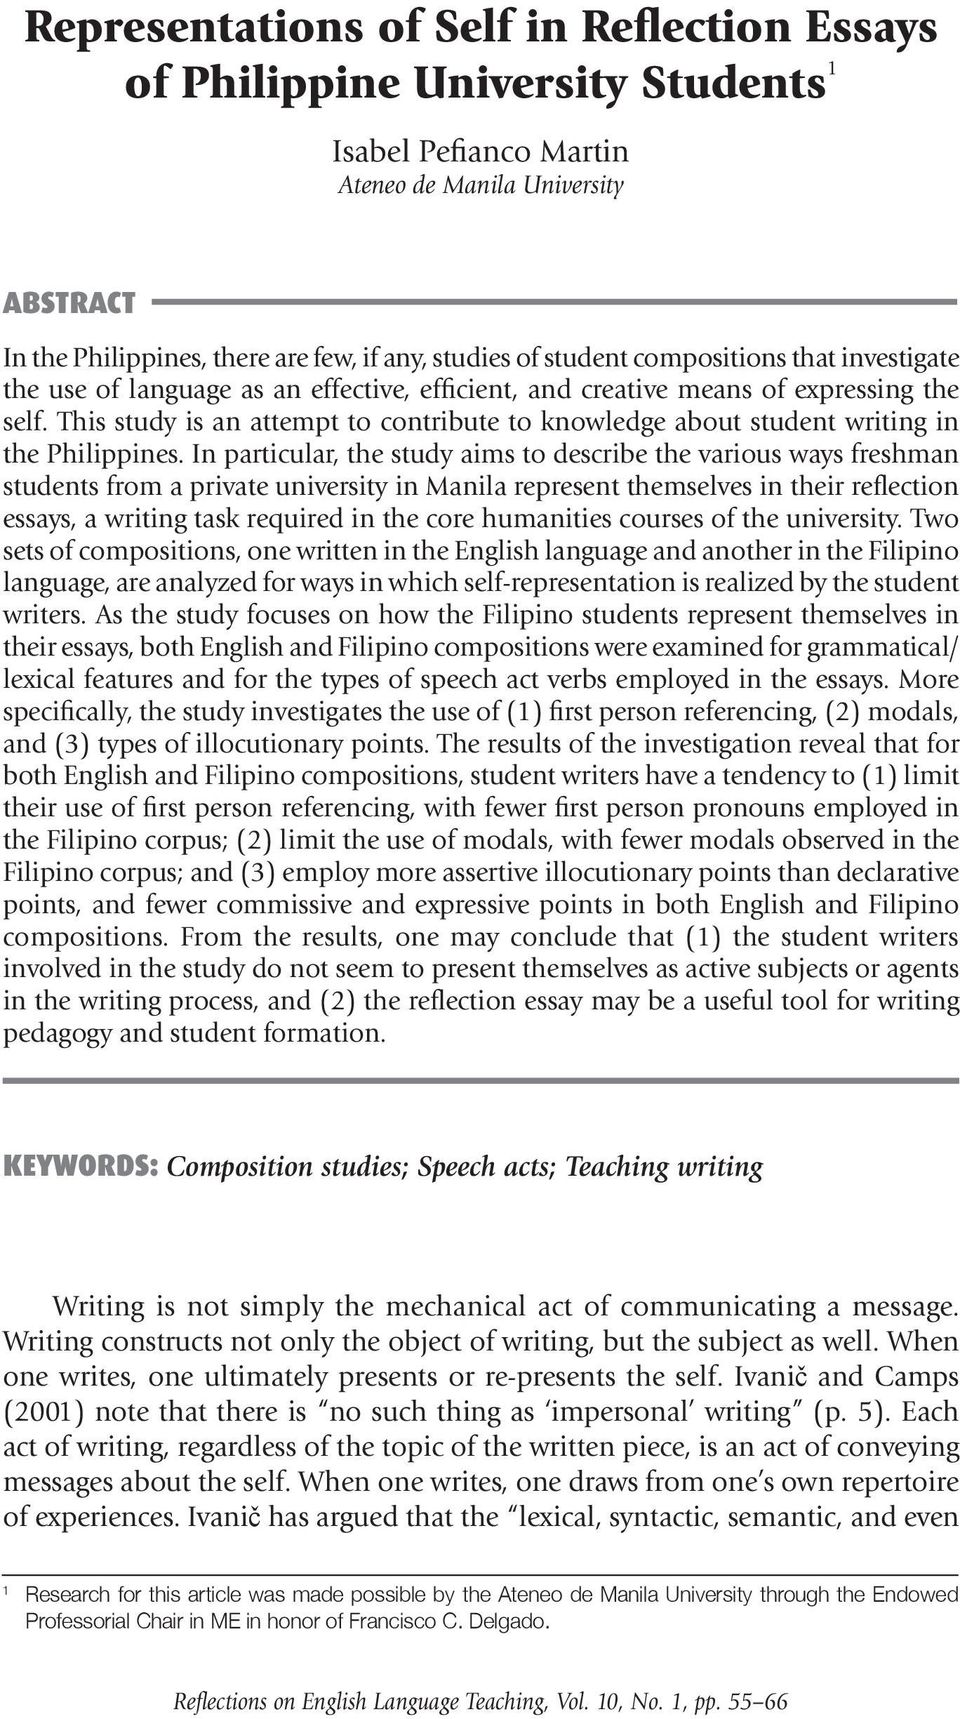 the self. This study is an attempt to contribute to knowledge about student writing in the Philippines.